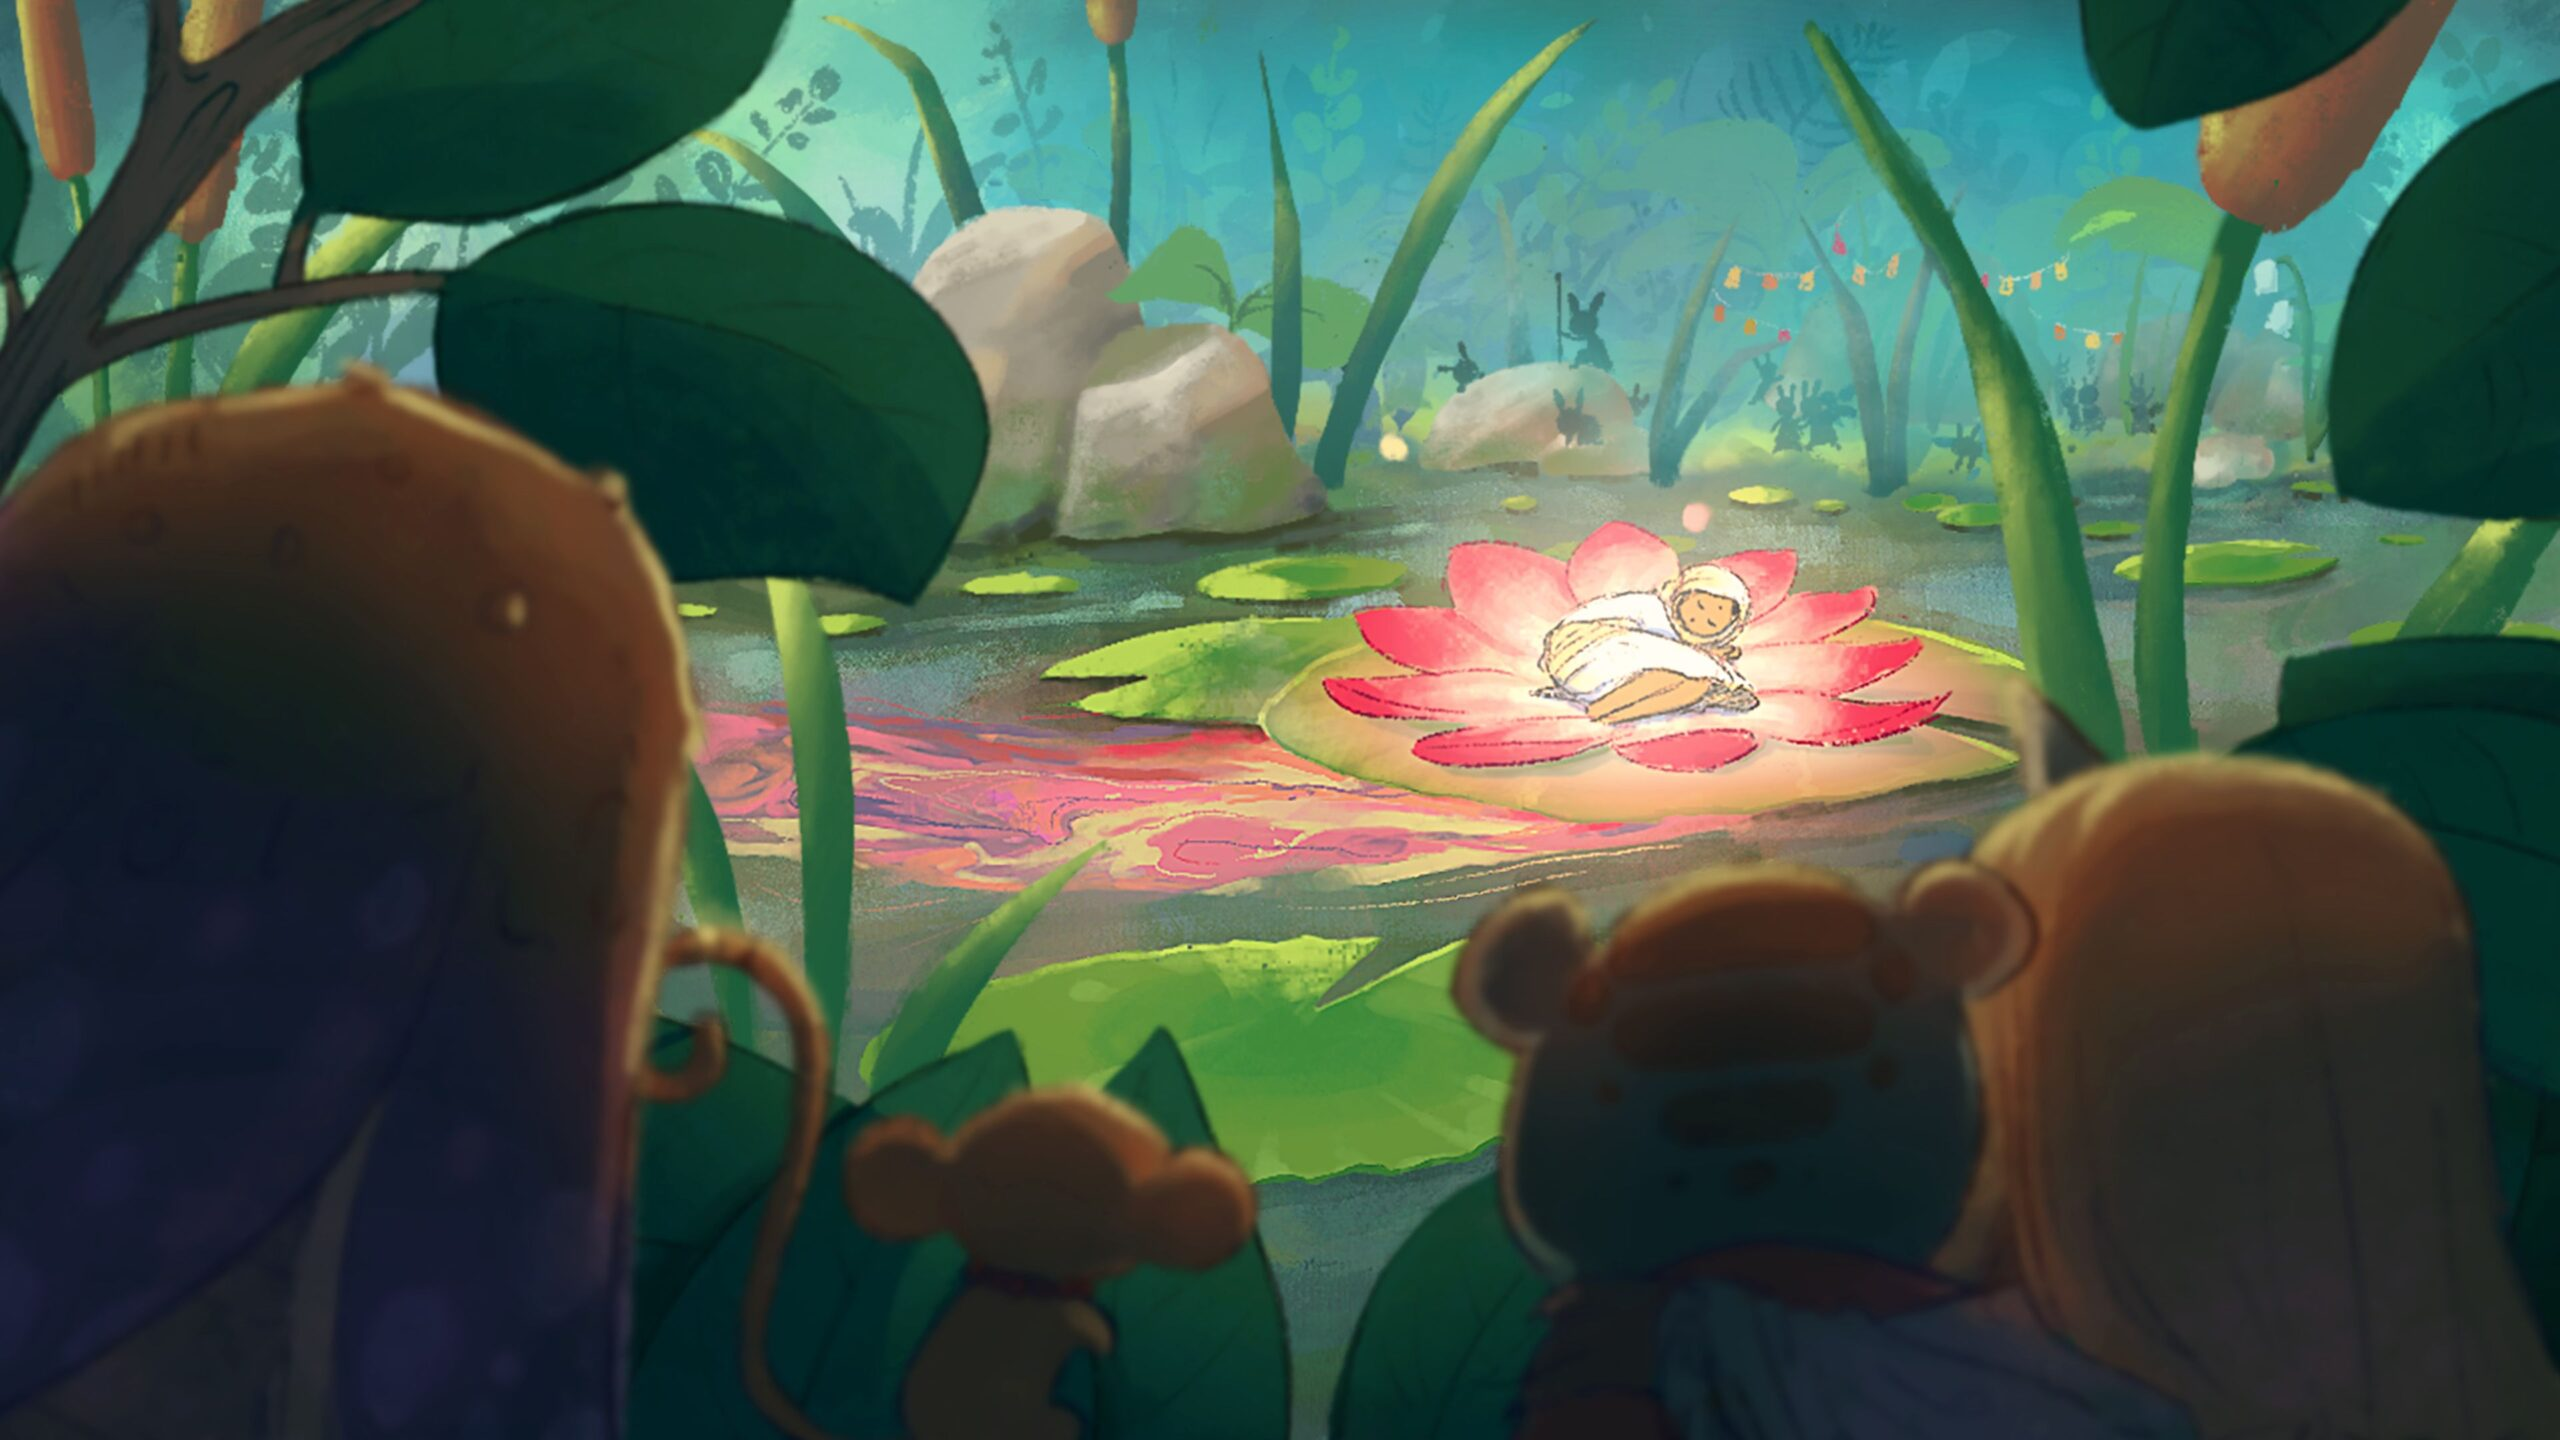 Painted Waters Concept Image - Tiny fantastical creatures watch the arrival of the one, while hiding in the shadows around a pond. The one lays in the center of a large flower and the waters around the flower swirl with bright pink, purple, and golden colors.